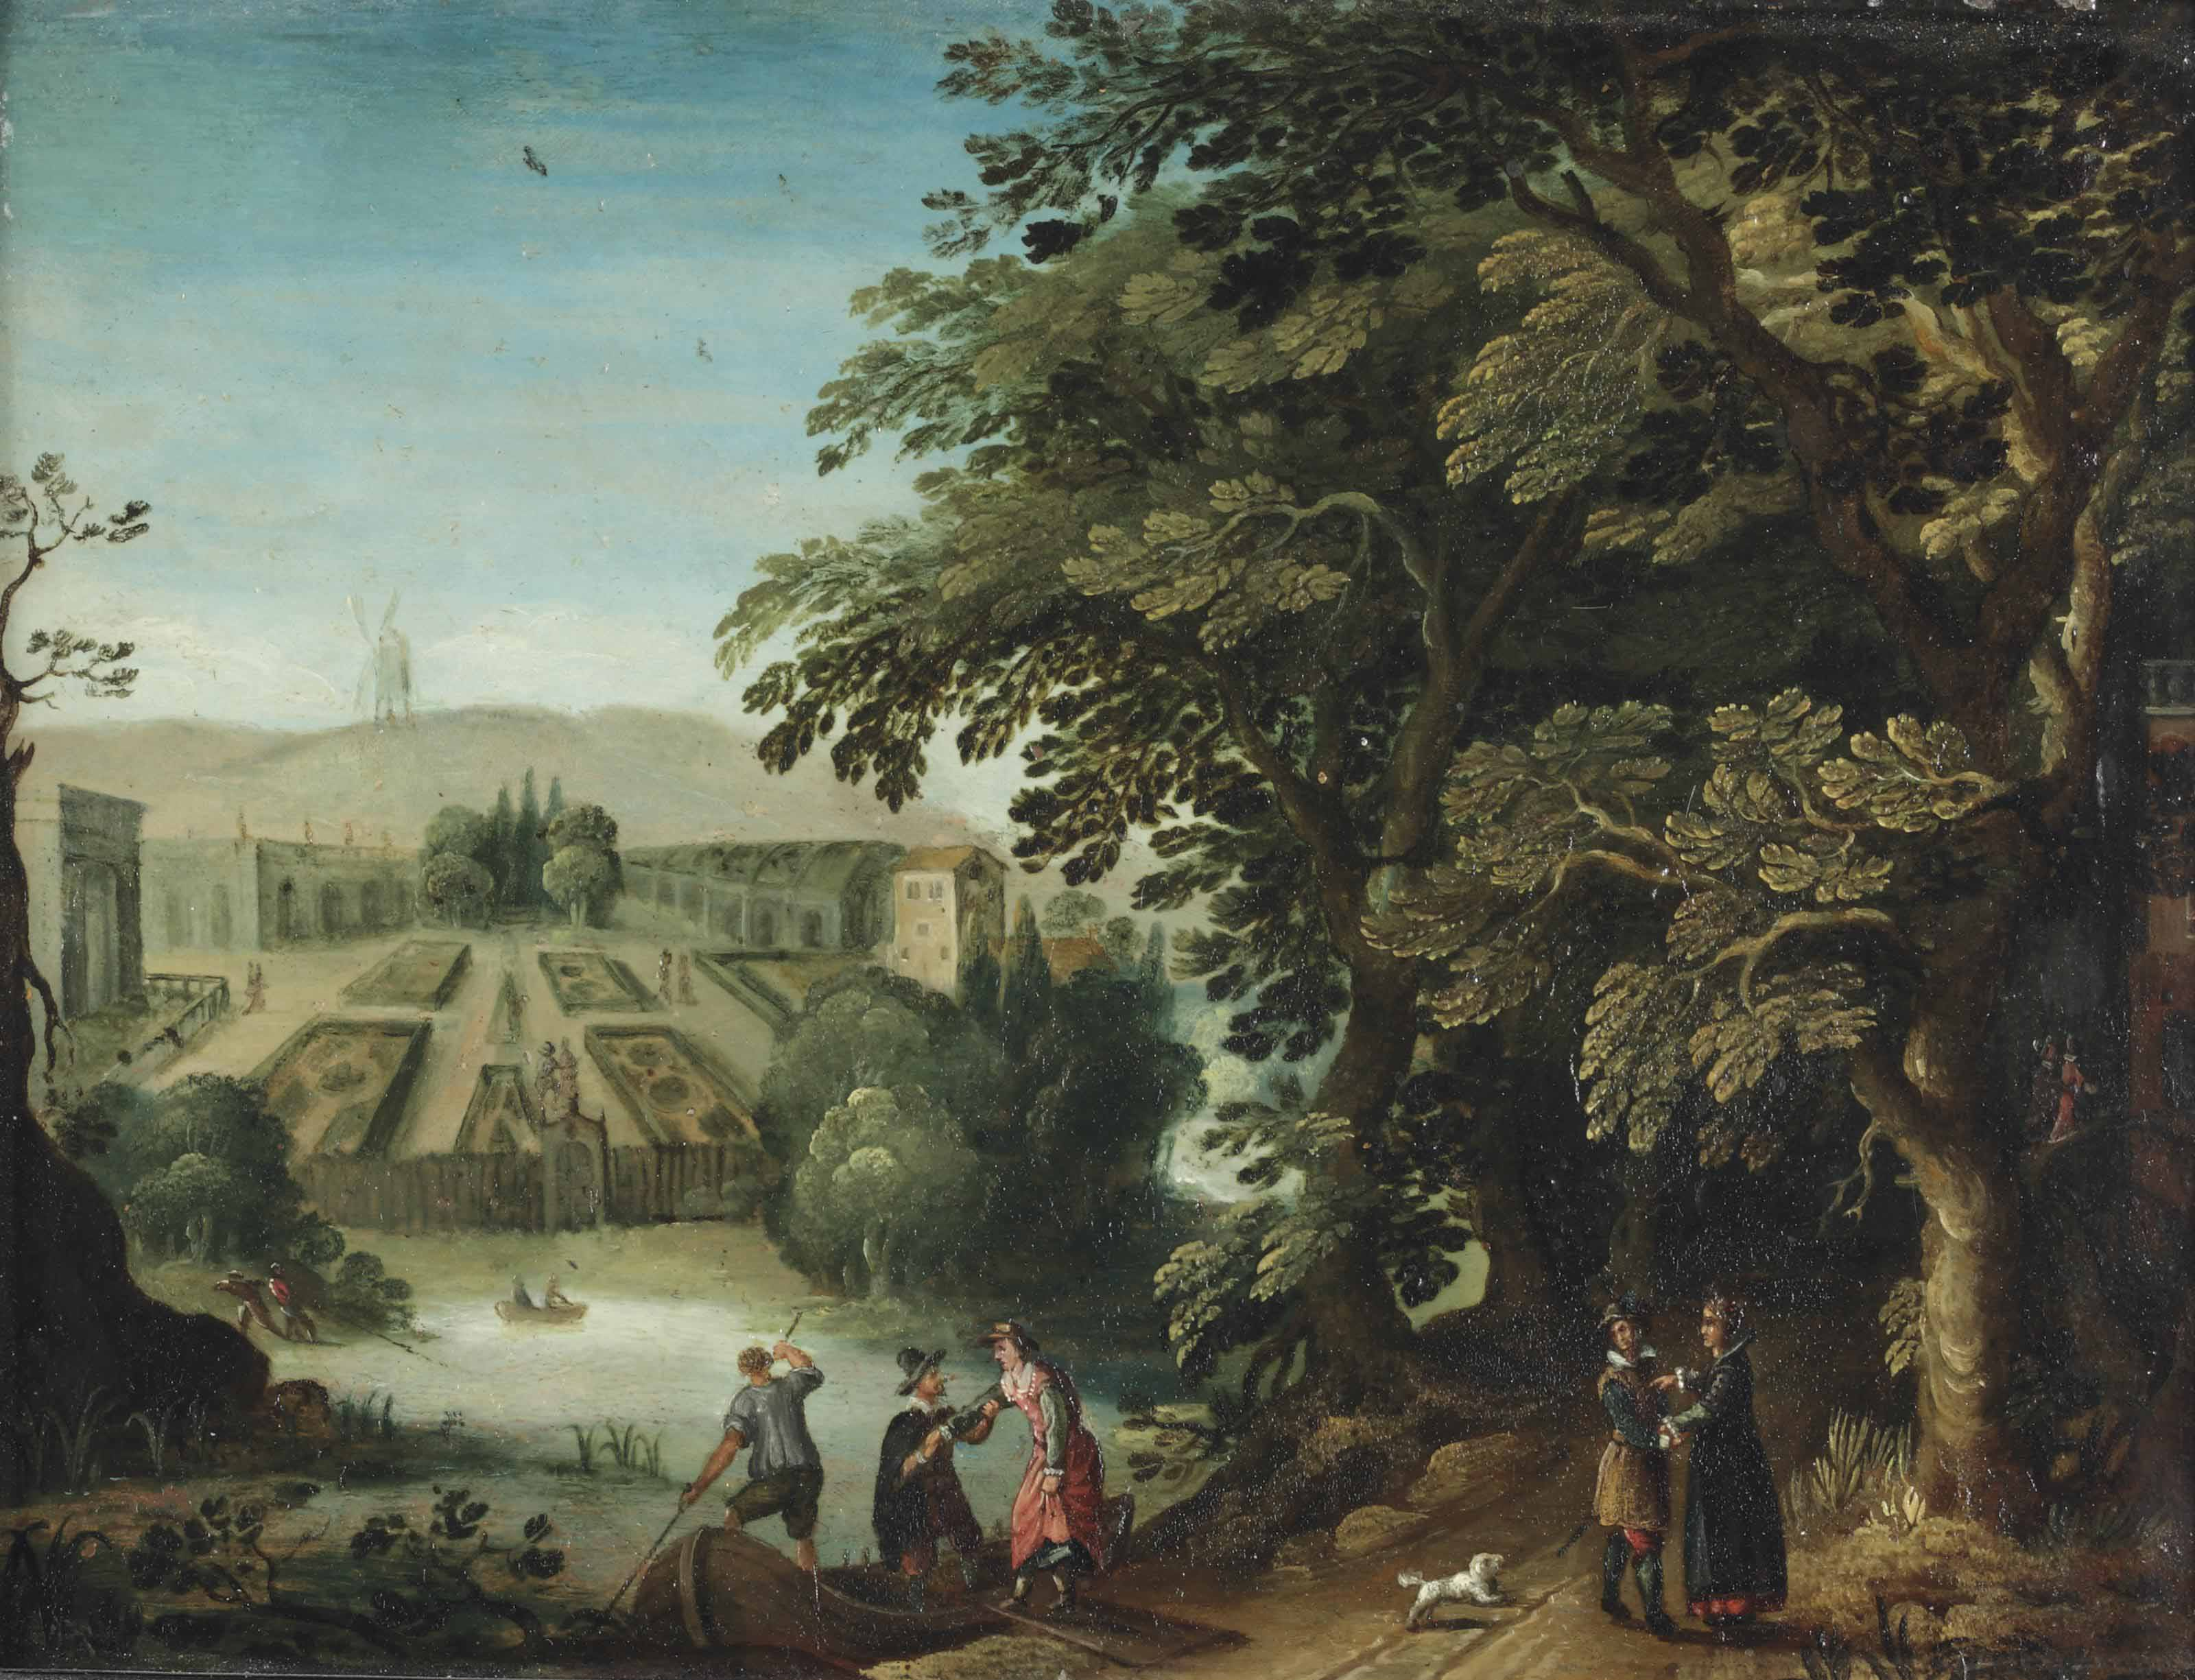 An elegant company strolling through a woodland park, a lake and a formal garden beyond